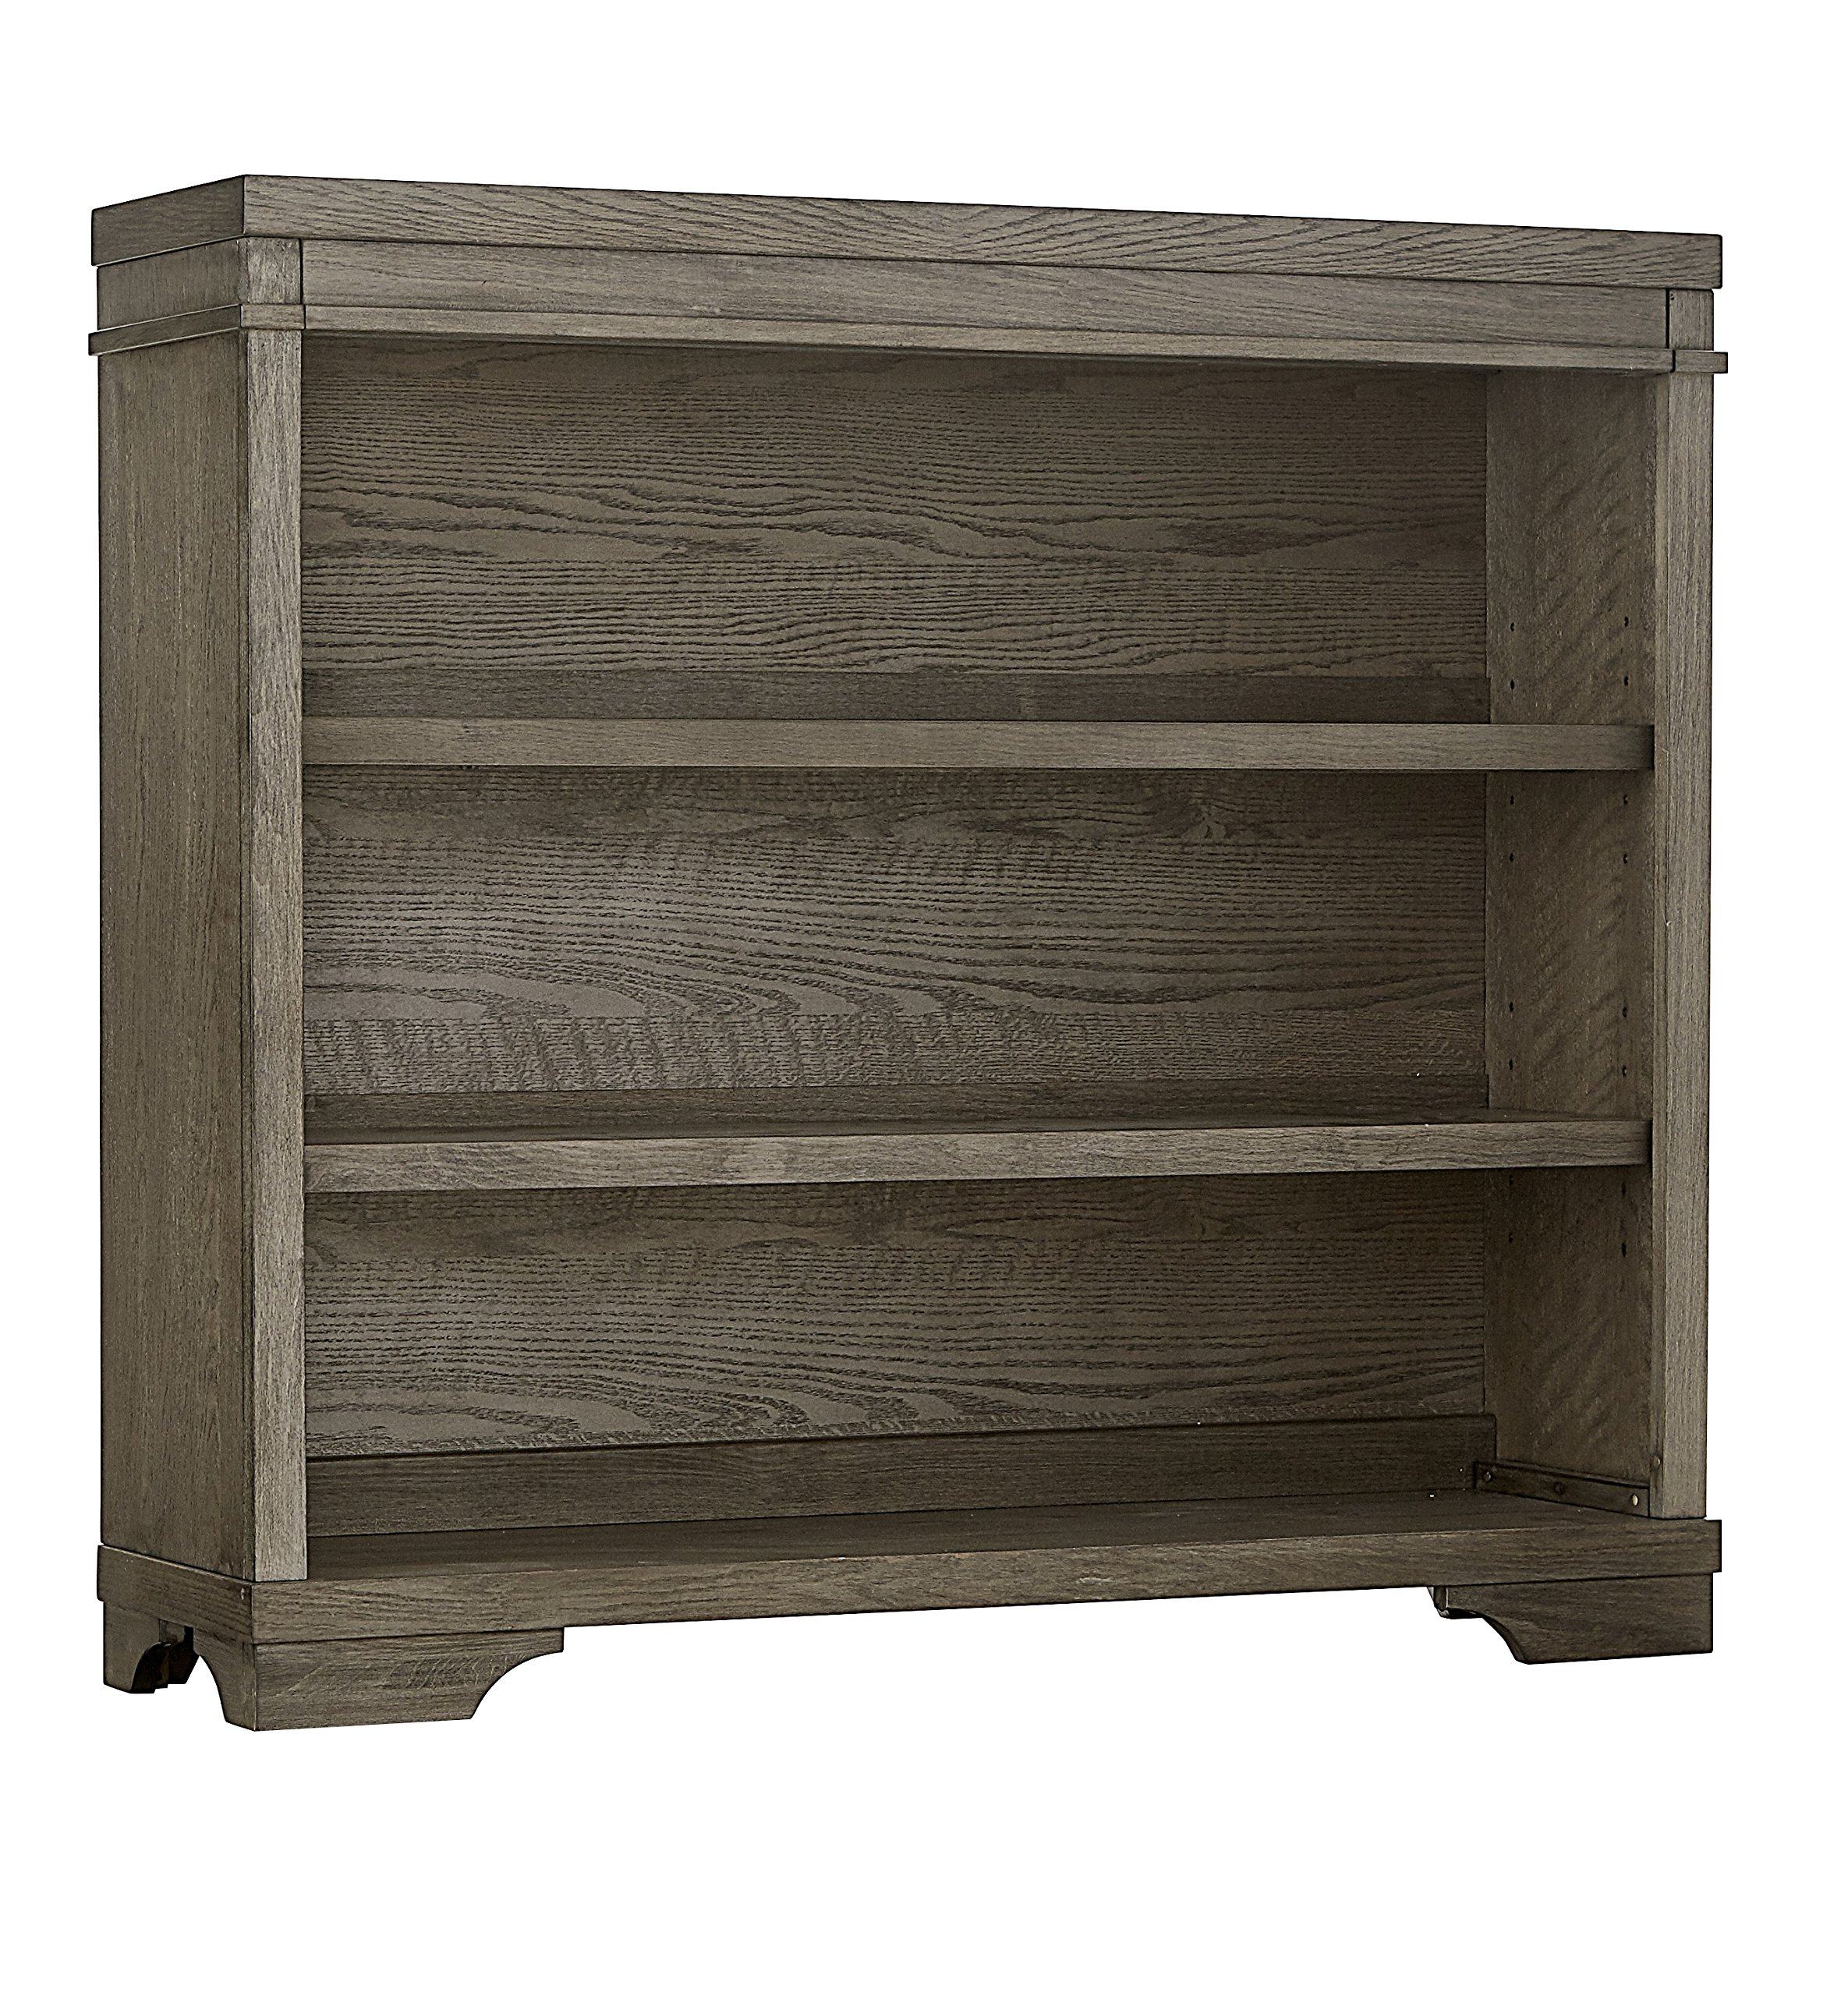 Westwood Design Foundry Hutch or Bookcase, Brushed Pewter by Westwood Design